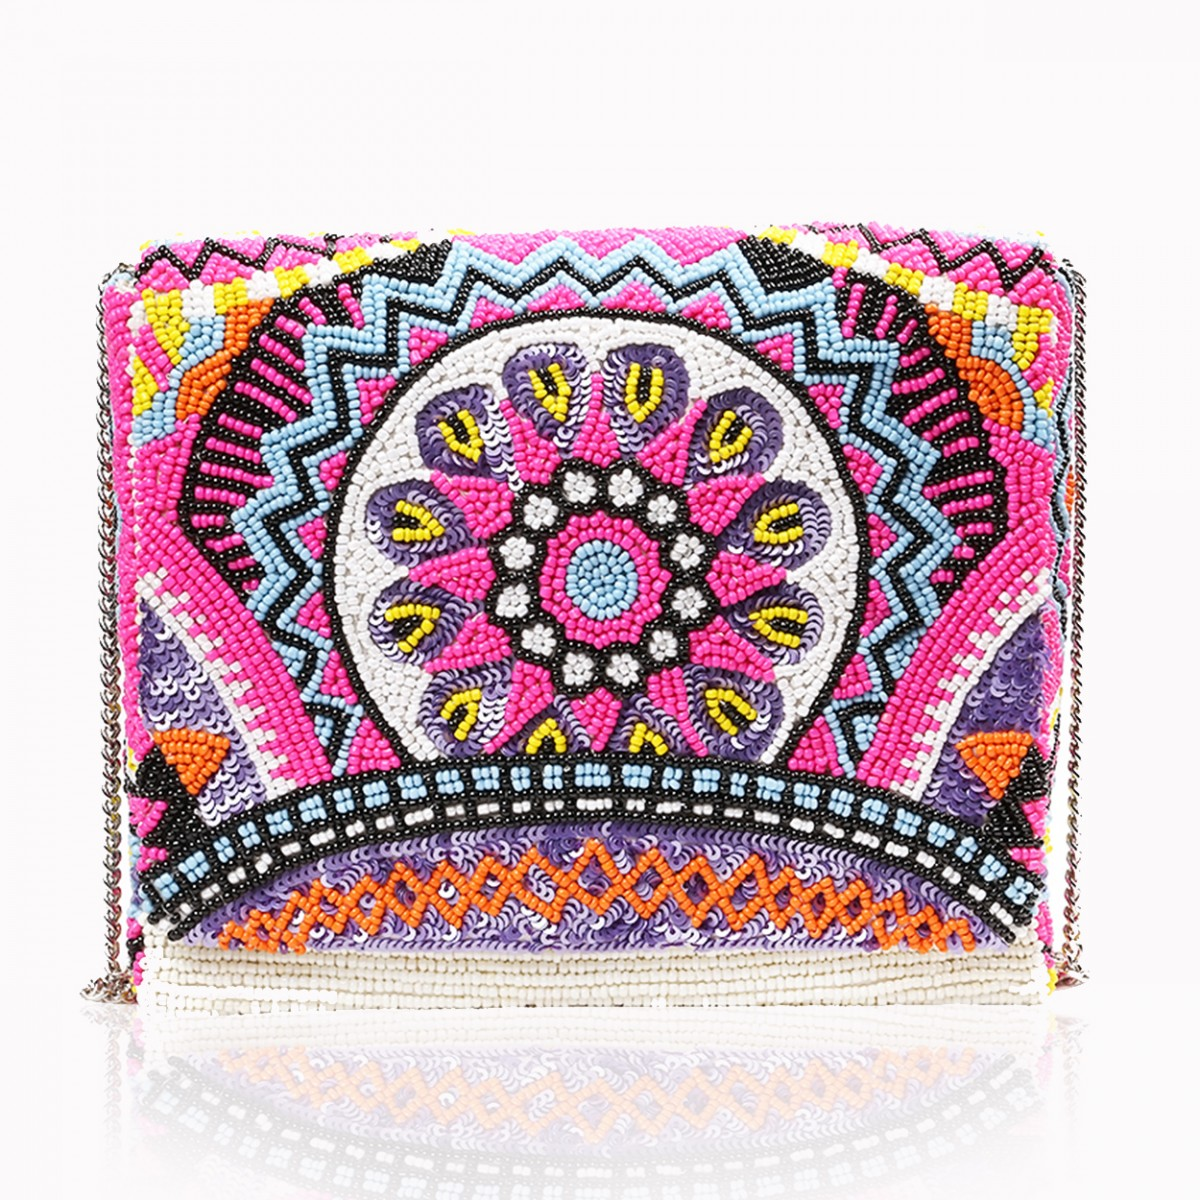 Magenta beaded flower evening clutch bag